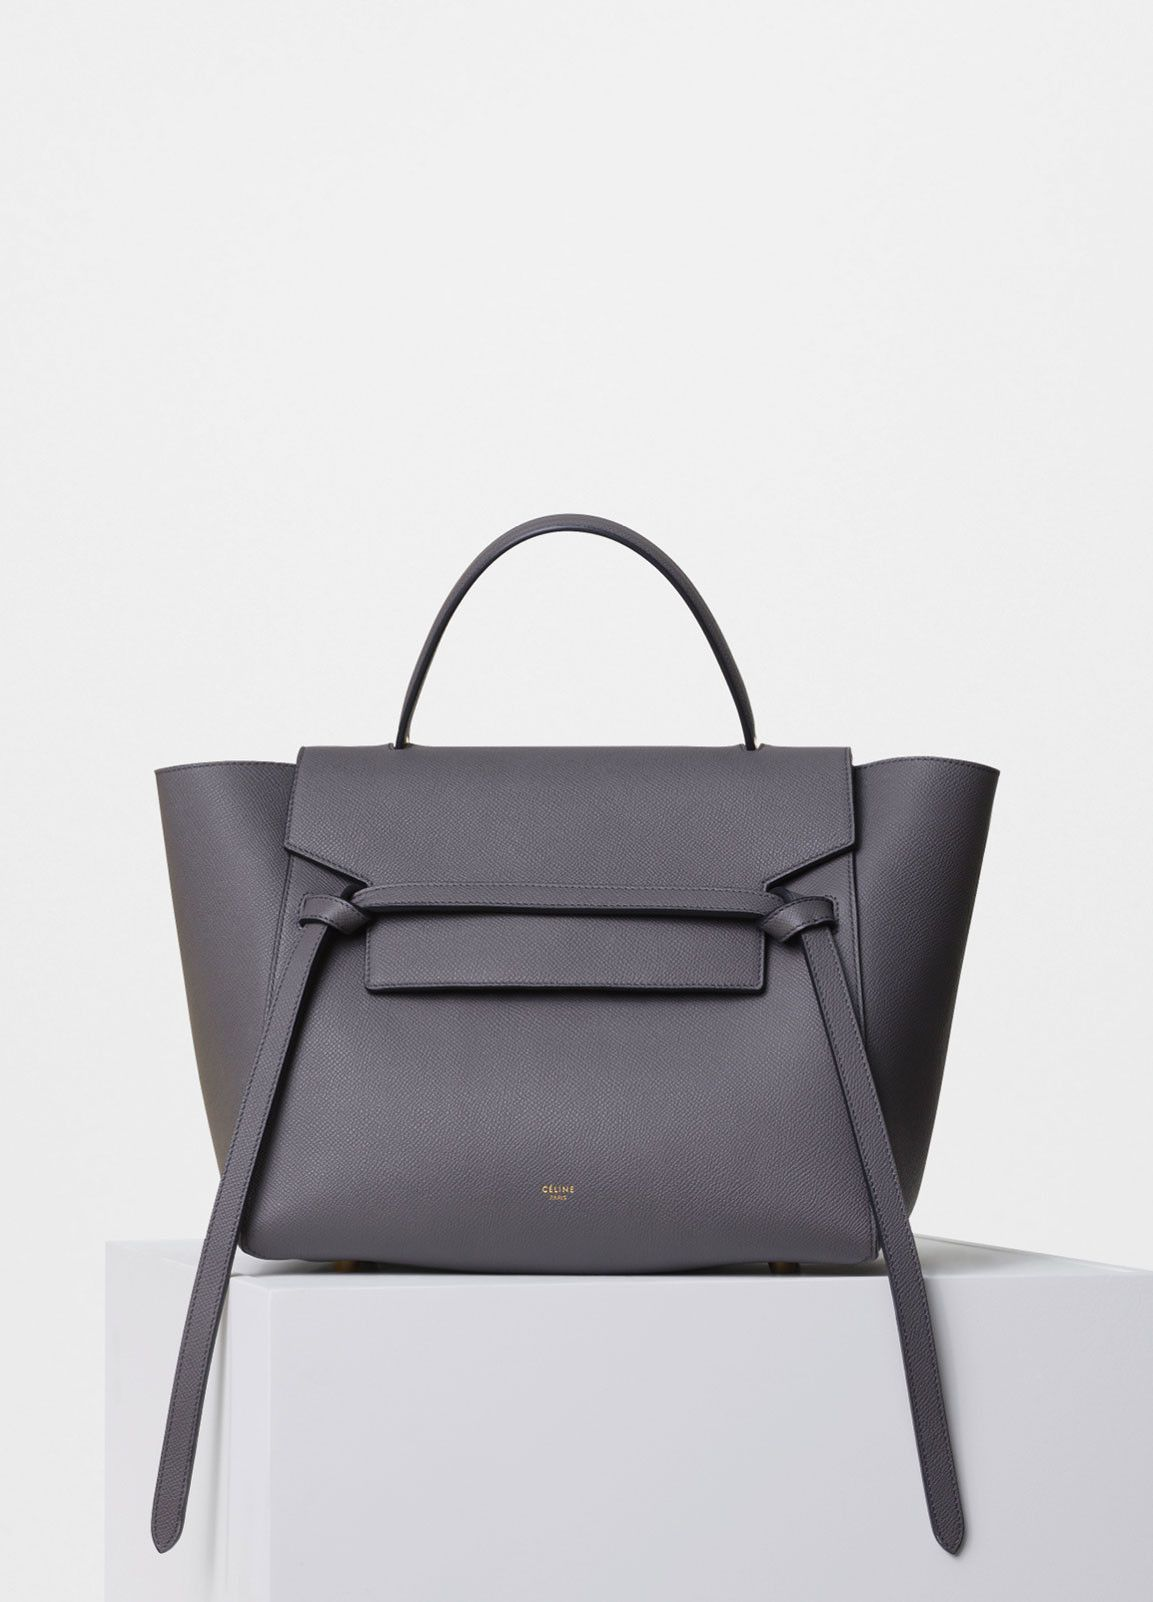 64cb124fb4 Mini Belt Bag in Grained Calfskin - Céline